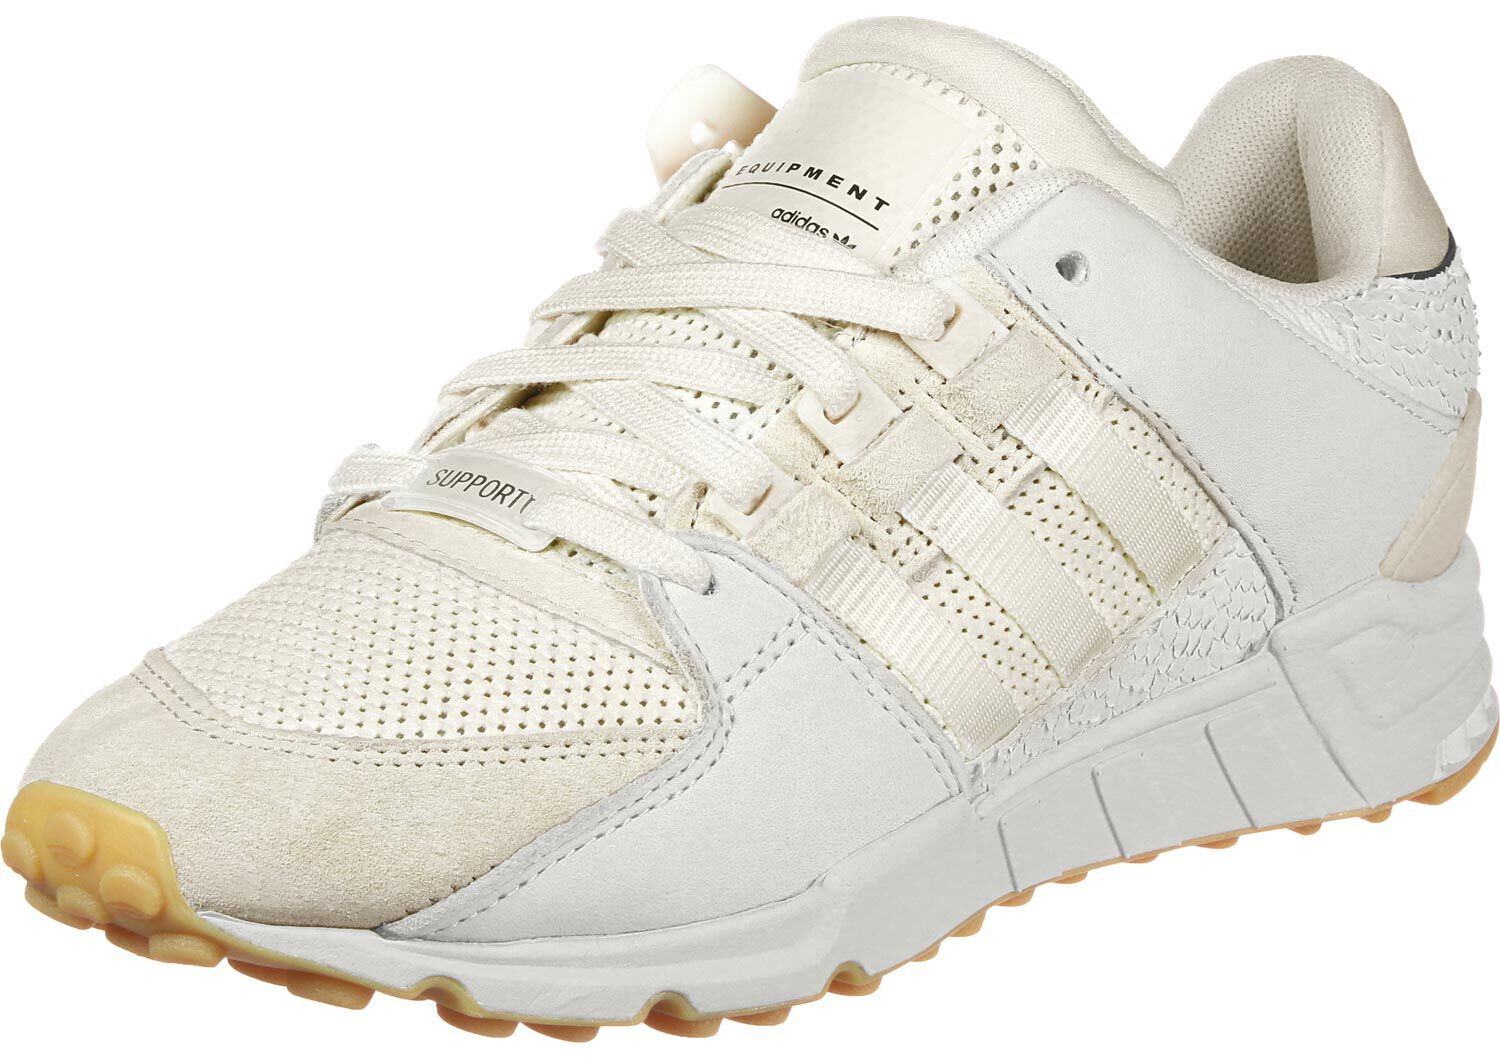 adidas EQT Support RF - Sneakers Low at